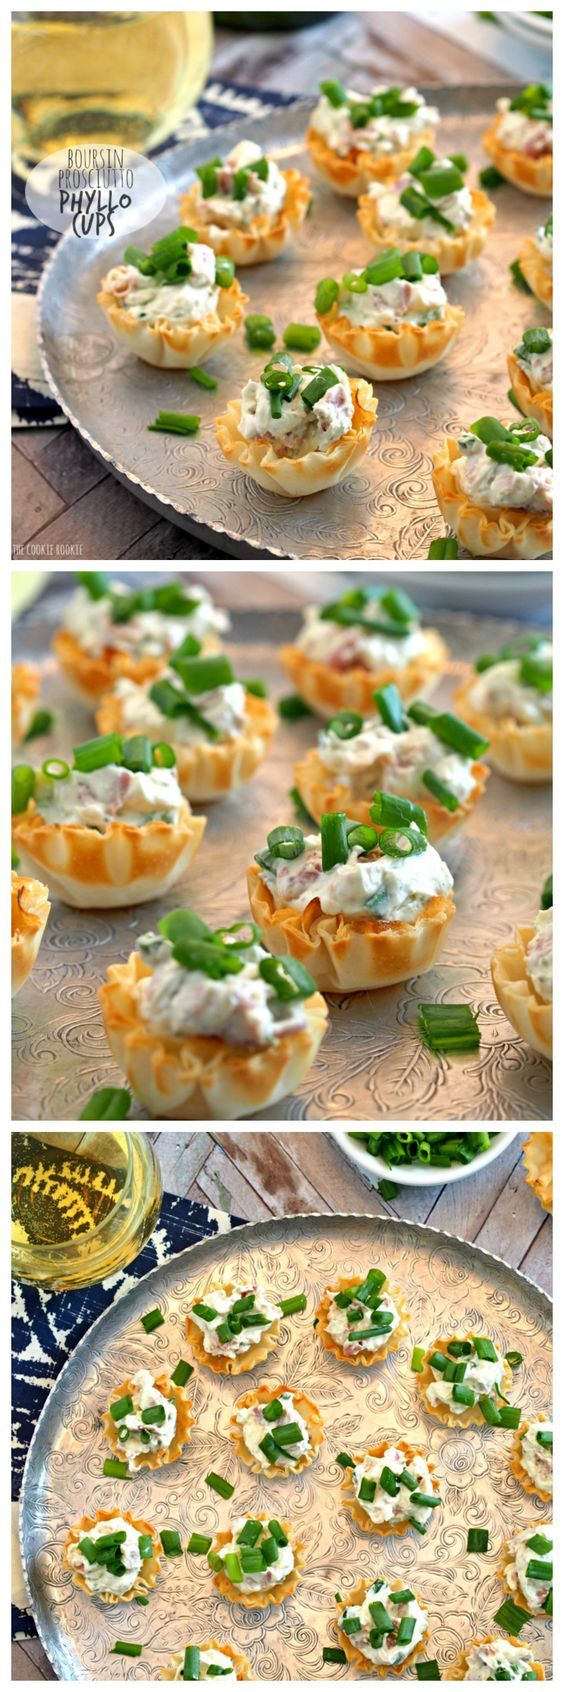 These Boursin & Prosciutto Phyllo Cups are the perfect bitesize appetizer! Perfect for wine night, the tailgate, or family holidays. YUM! #tailgate #appetizer #gameday | http://www.thecookierookie.com/boursin-prosciutto-phyllo-cups/ |